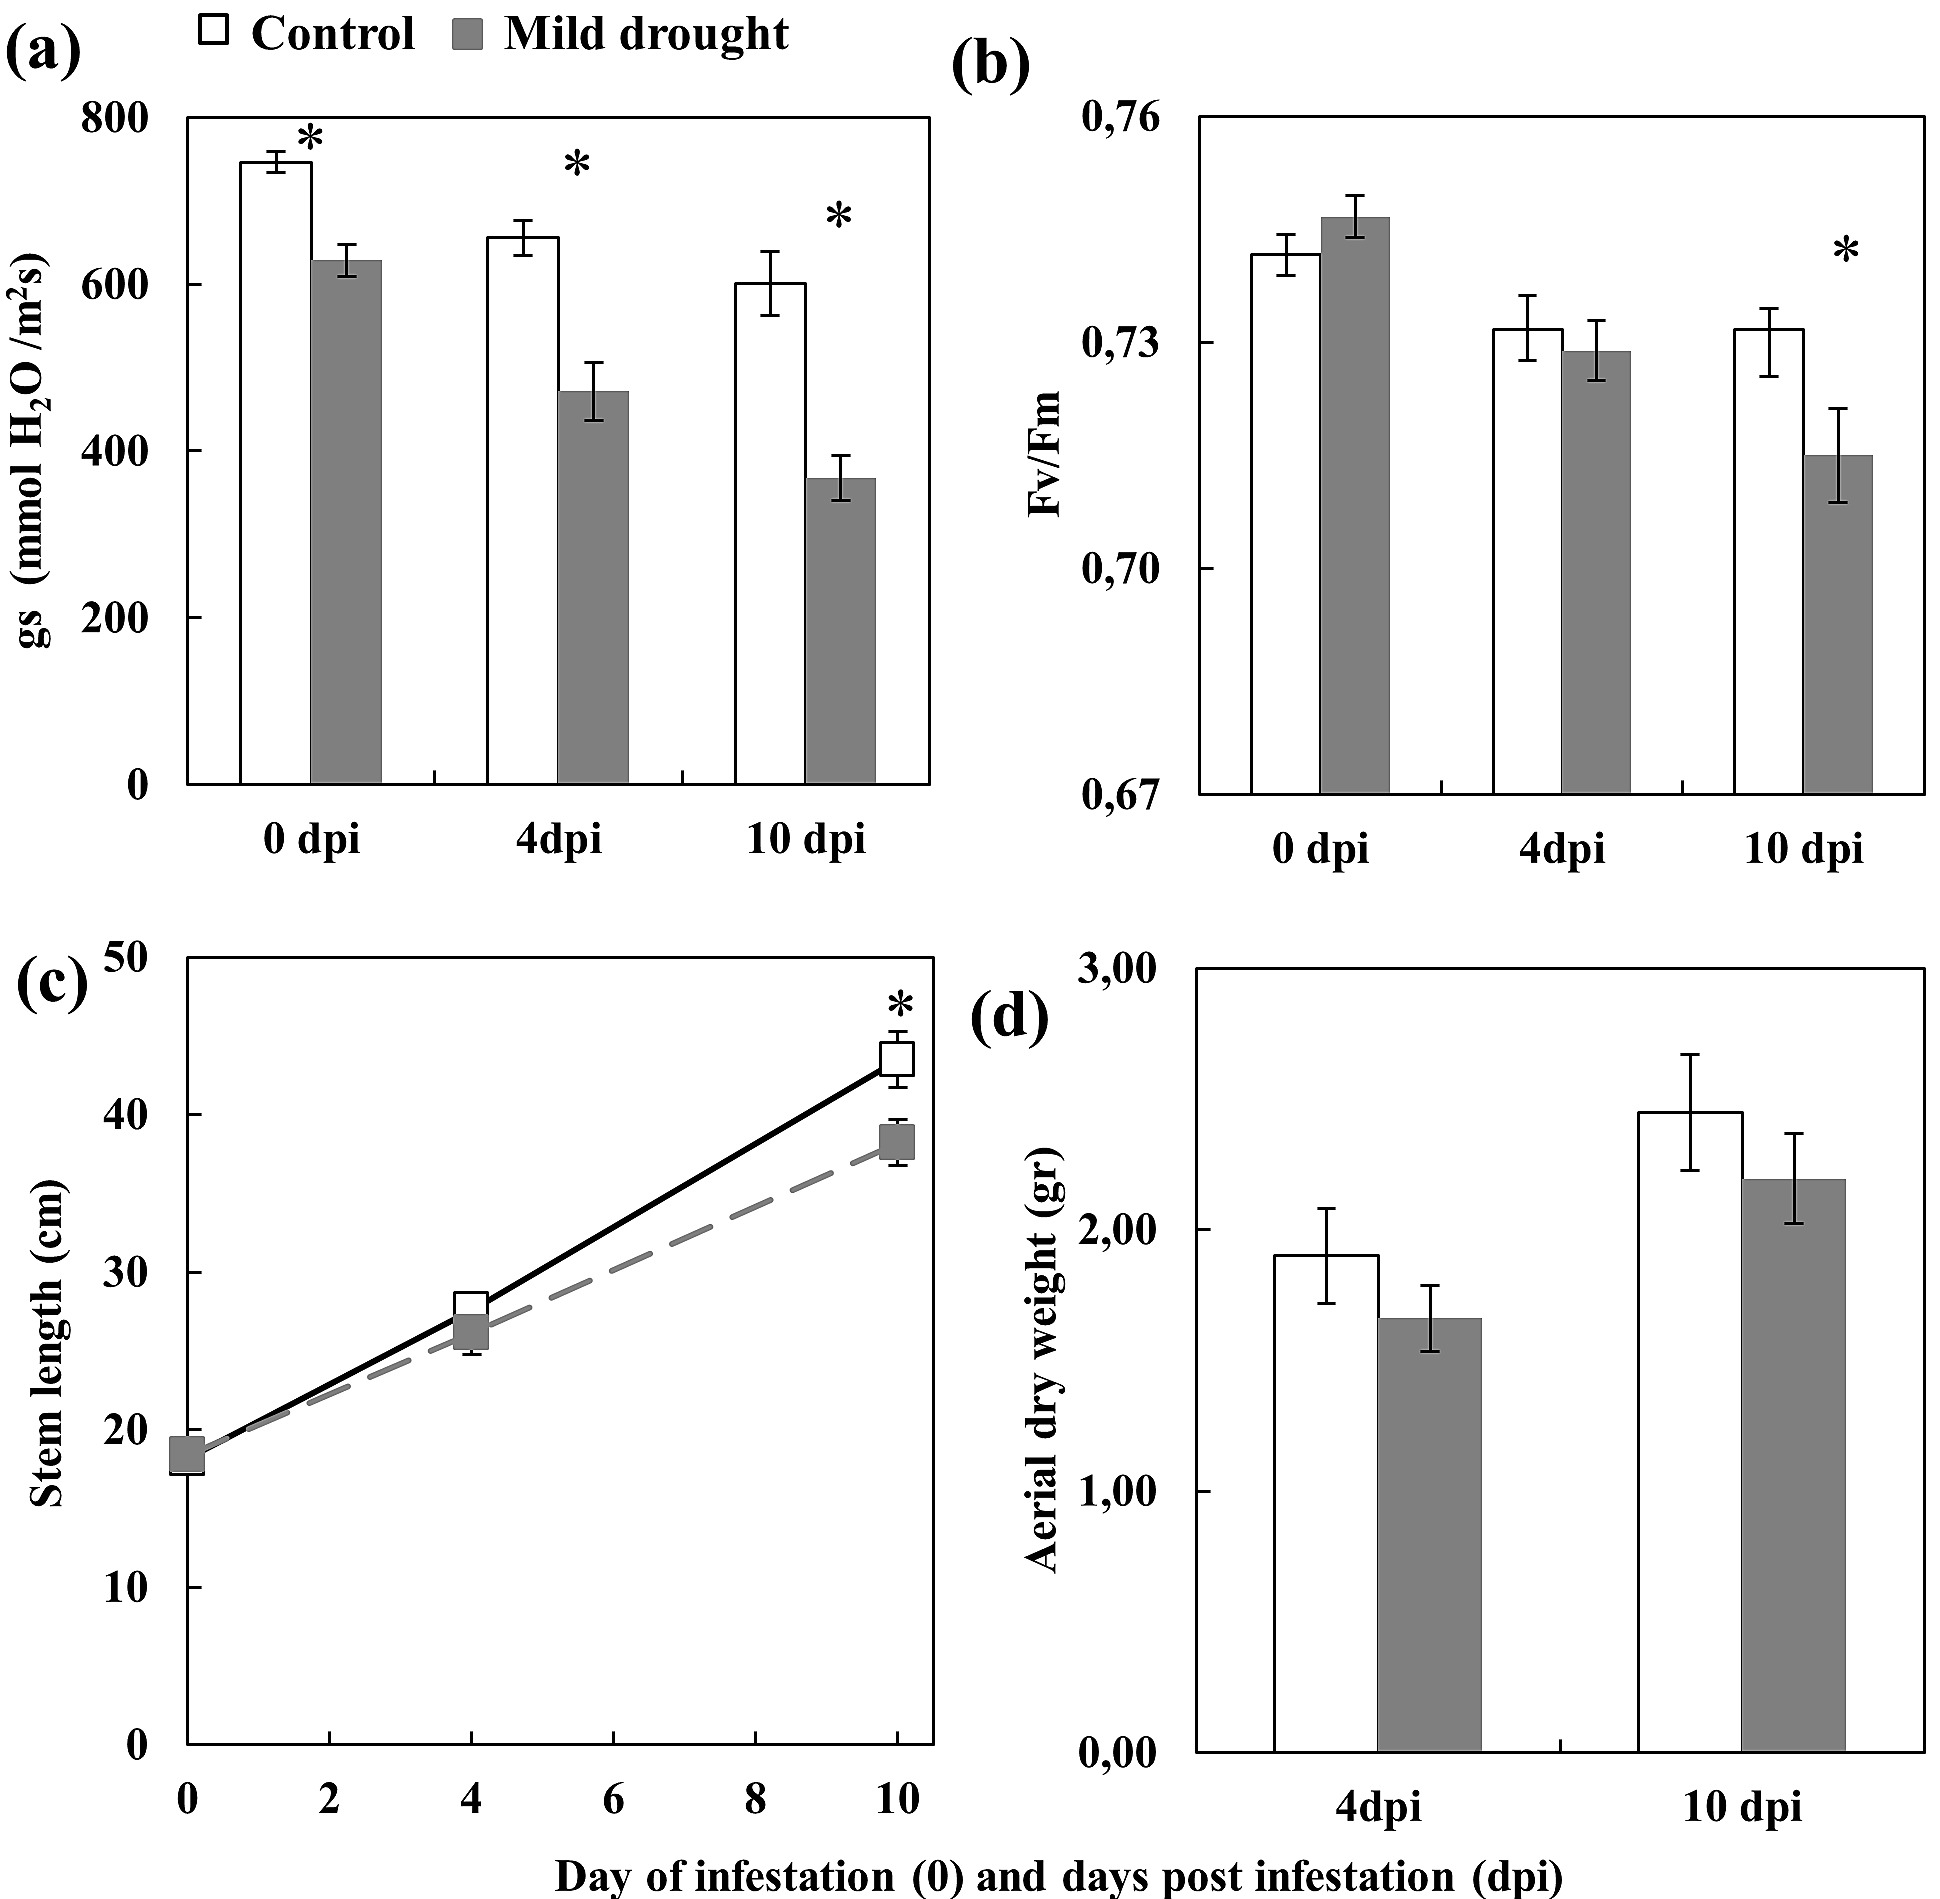 Drought Stressed Tomato Plants Trigger Bottomup Effects On The Prune Tomatoes Diagram Of Plant Effect Mild At Mite Infestation And 4 10 Days Post Dpi A Stomatal Conductance Gs B Maximum Quantum Yield